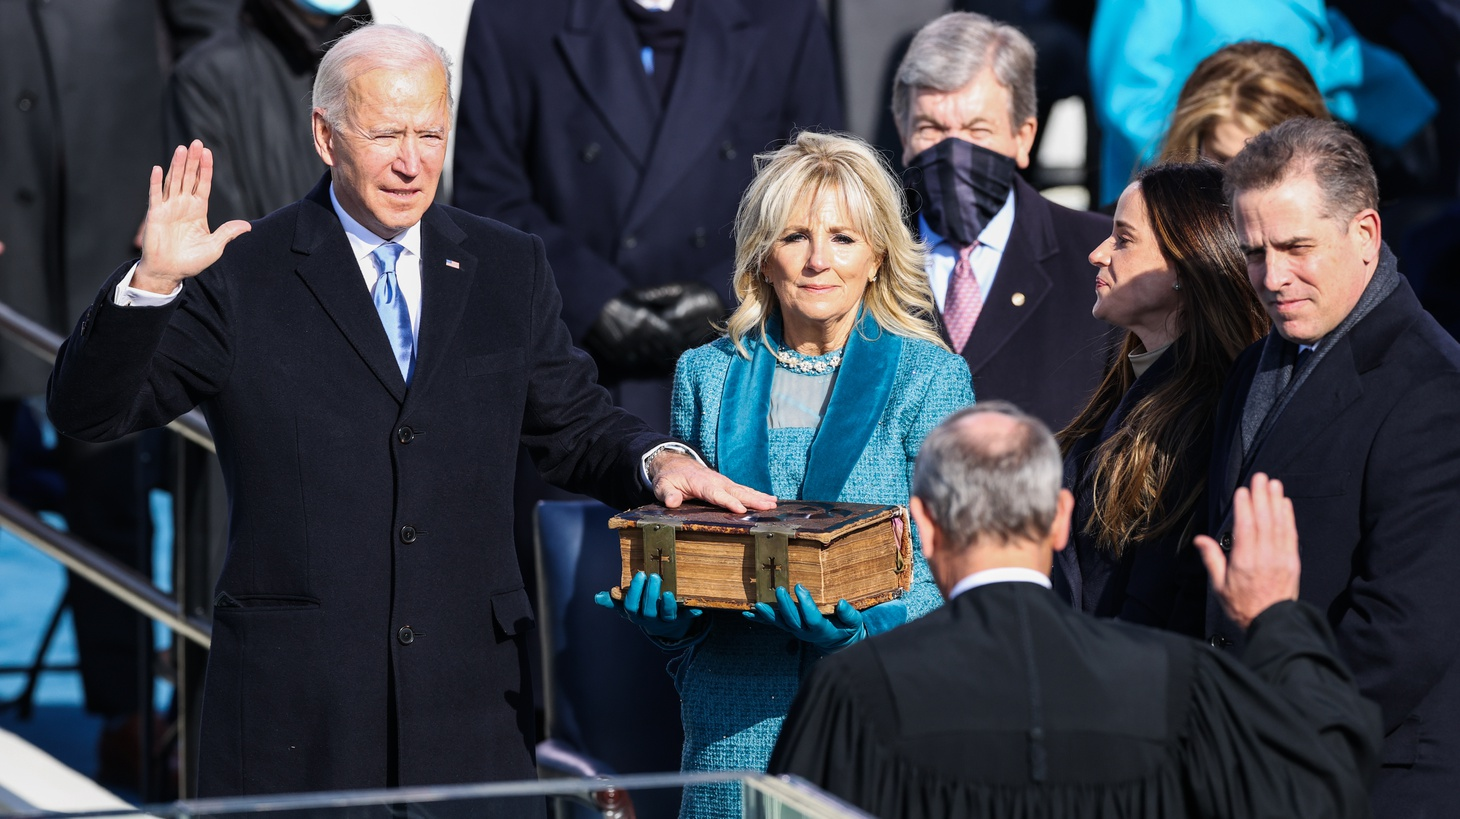 President-elect Joe Biden takes the Oath of Office to become the 46th president of the United States as he is sworn-in by Chief Justice of the United States John Roberts during the Inauguration Day ceremony held at the U.S. Capitol Building in Washington, D.C. on Jan. 20, 2021. President-elect Joe Biden becomes the 46th President of the United States at noon on Inauguration Day.